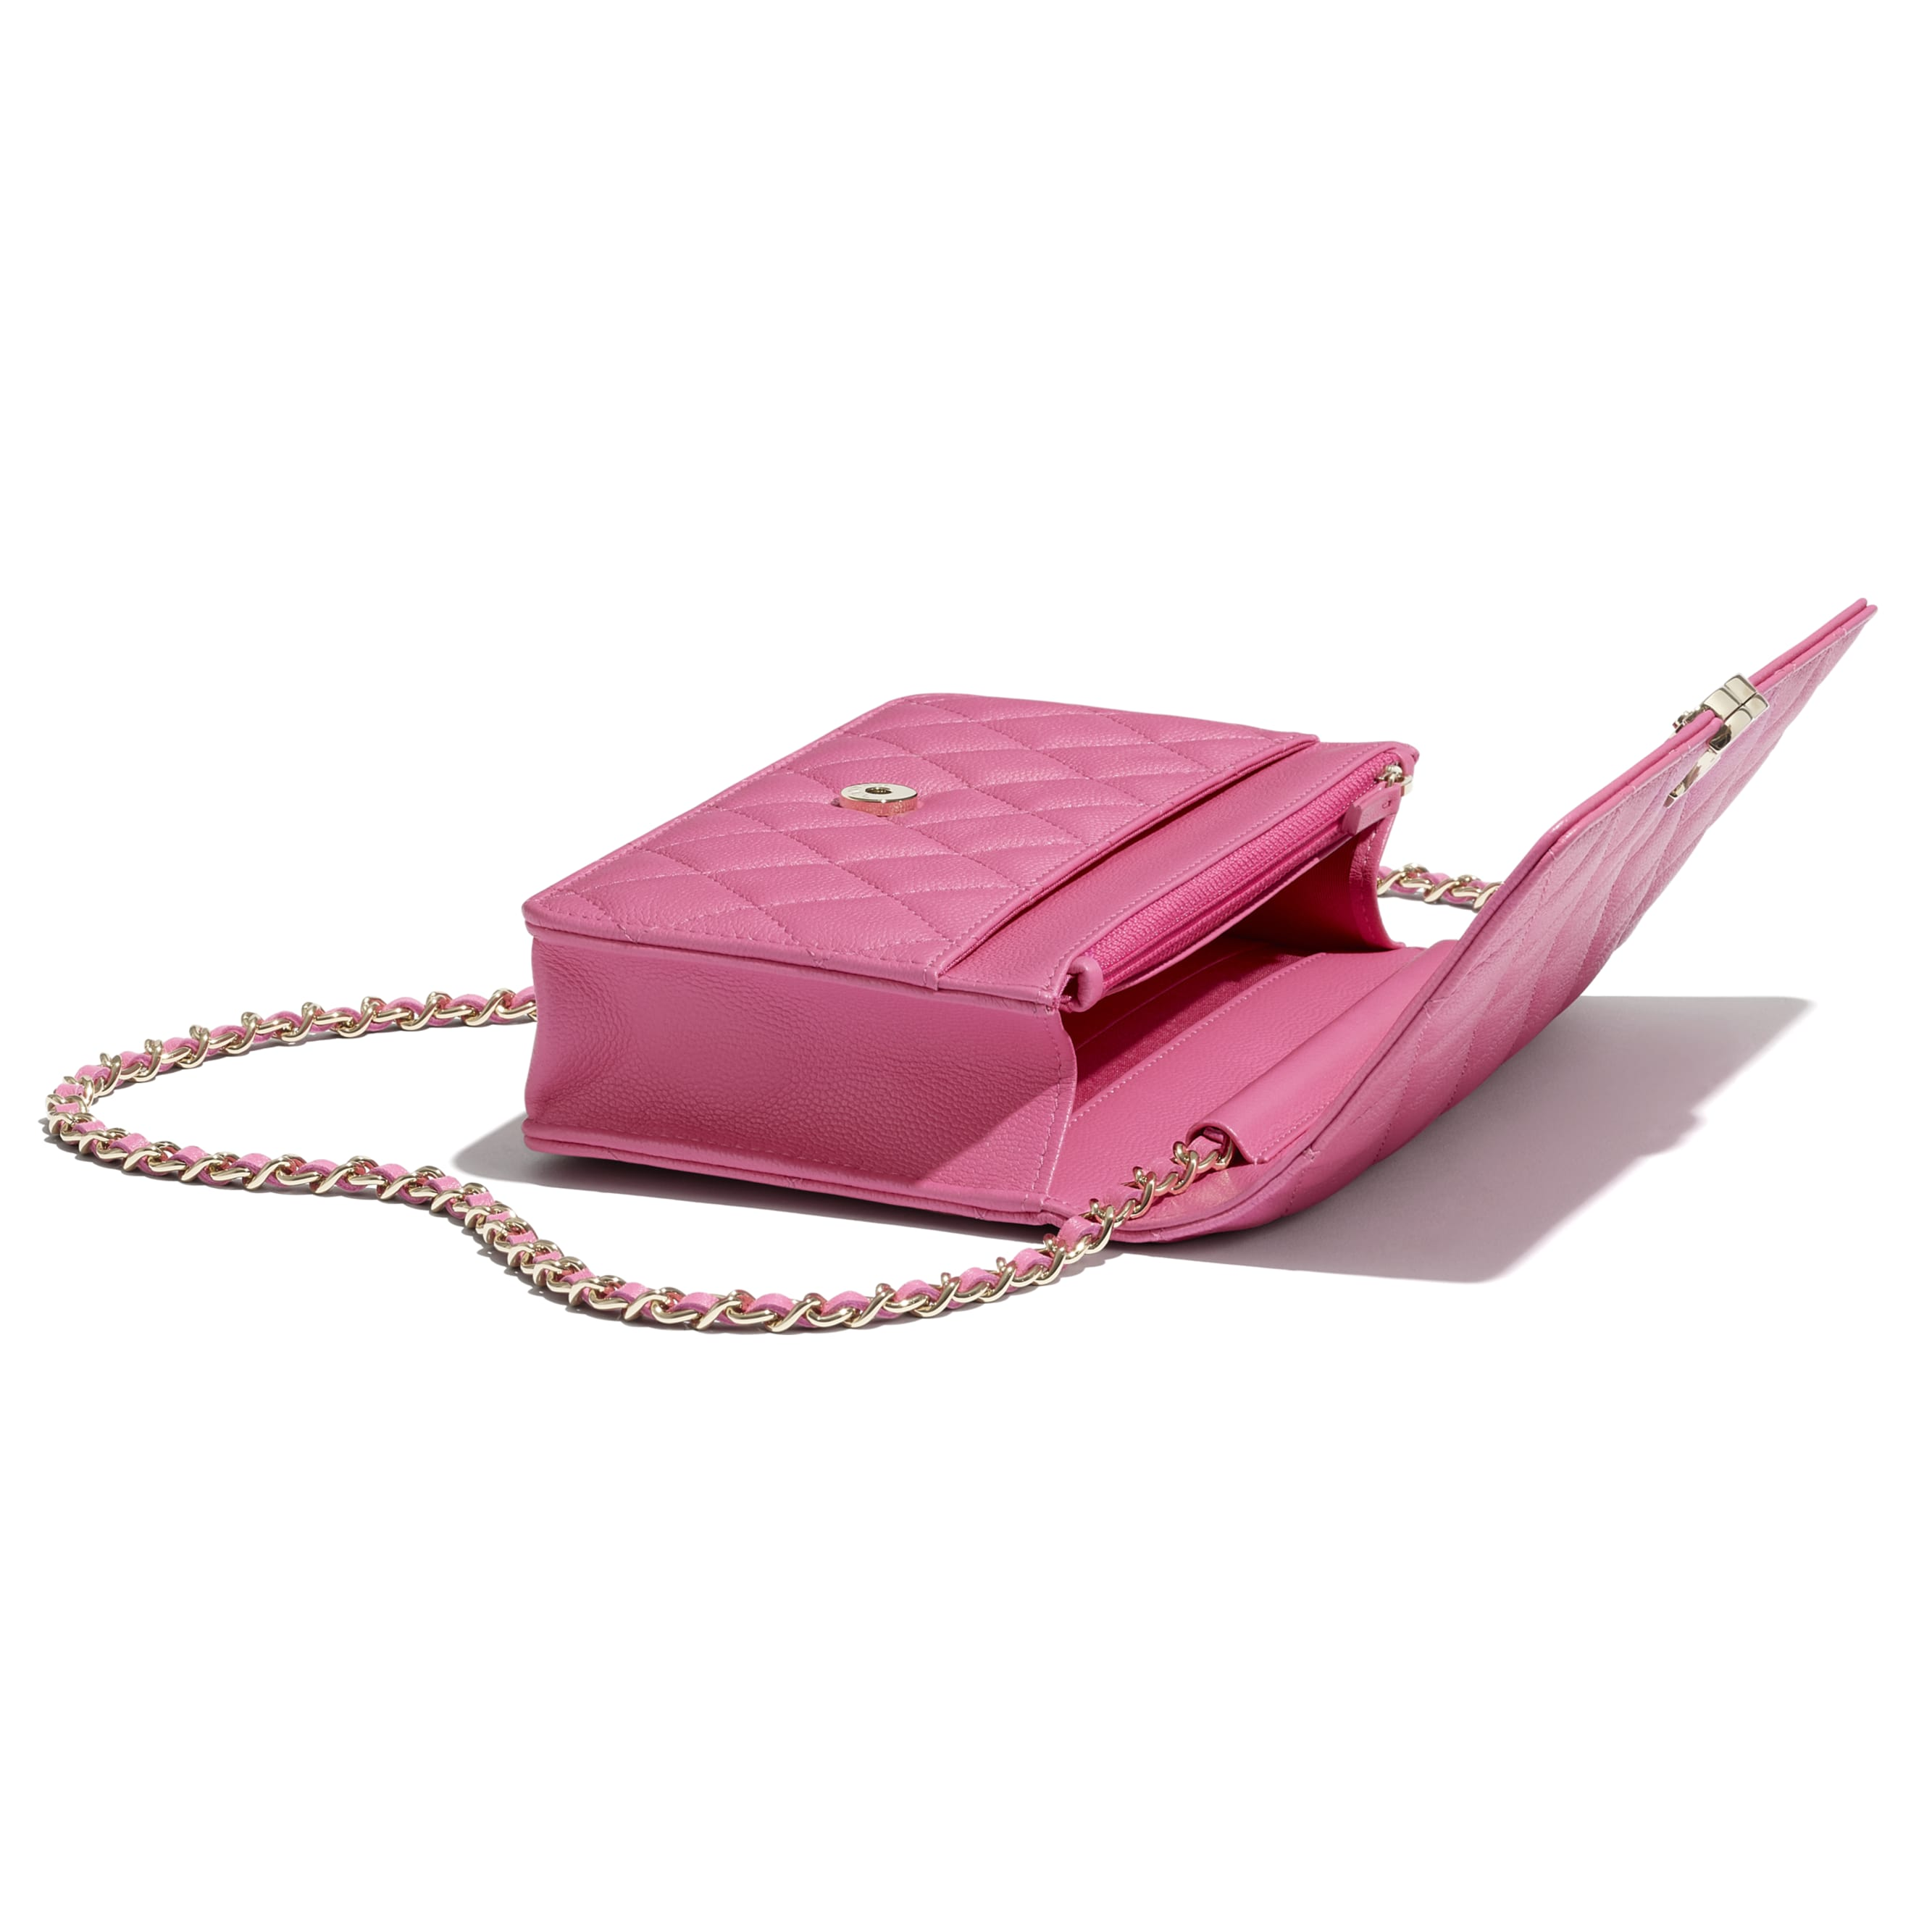 Wallet On Chain - Pink - Shiny Grained Calfskin, Gold-Tone & Lacquered Metal  - CHANEL - Extra view - see standard sized version